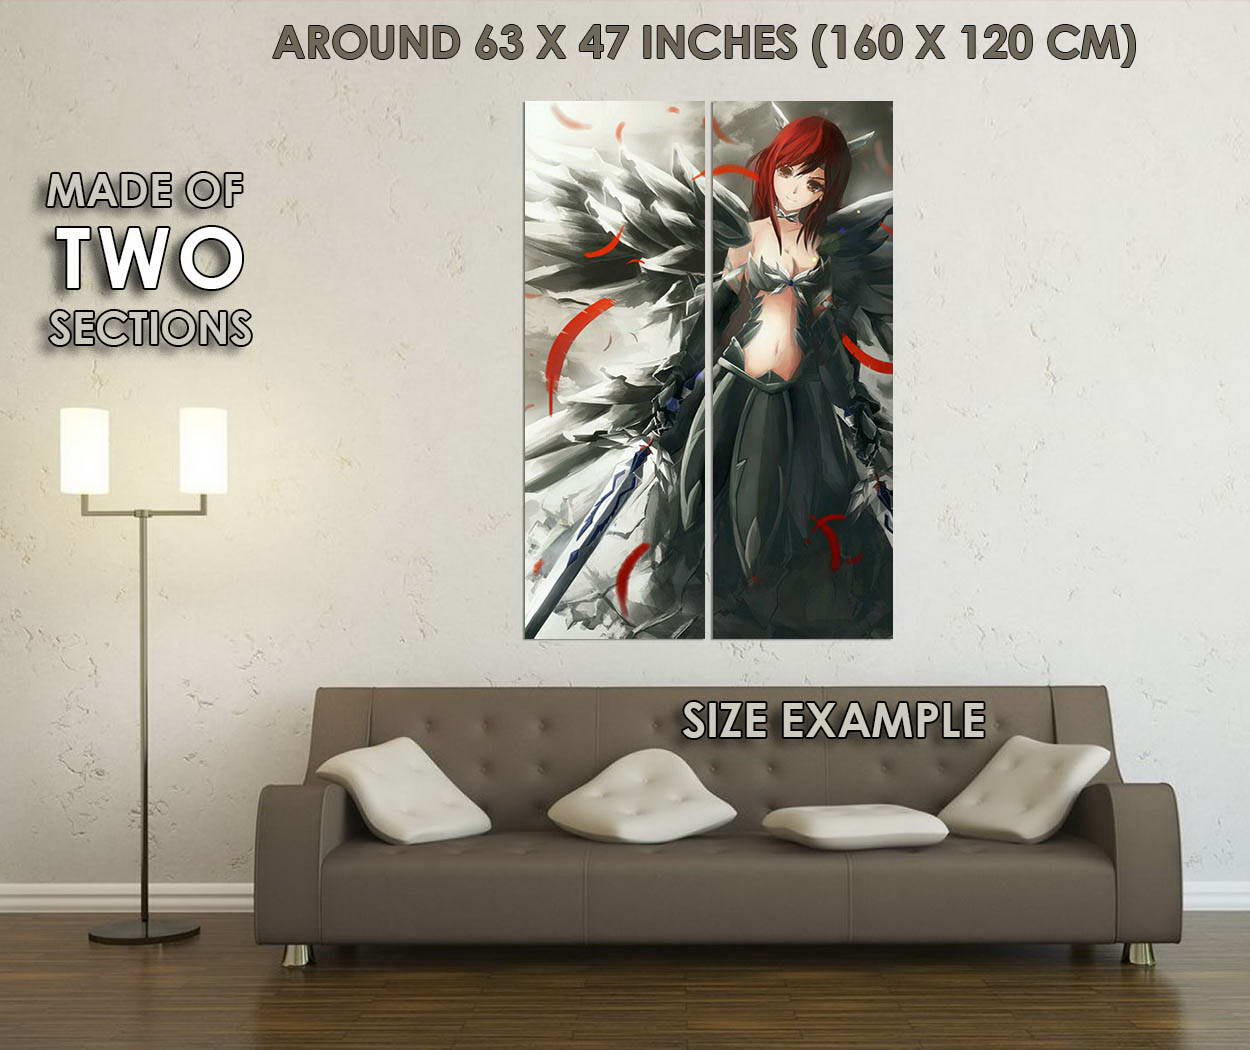 10435-FAIRY-TAIL-Anime-Erza-Scarlet-LAMINATED-POSTER-CA thumbnail 6